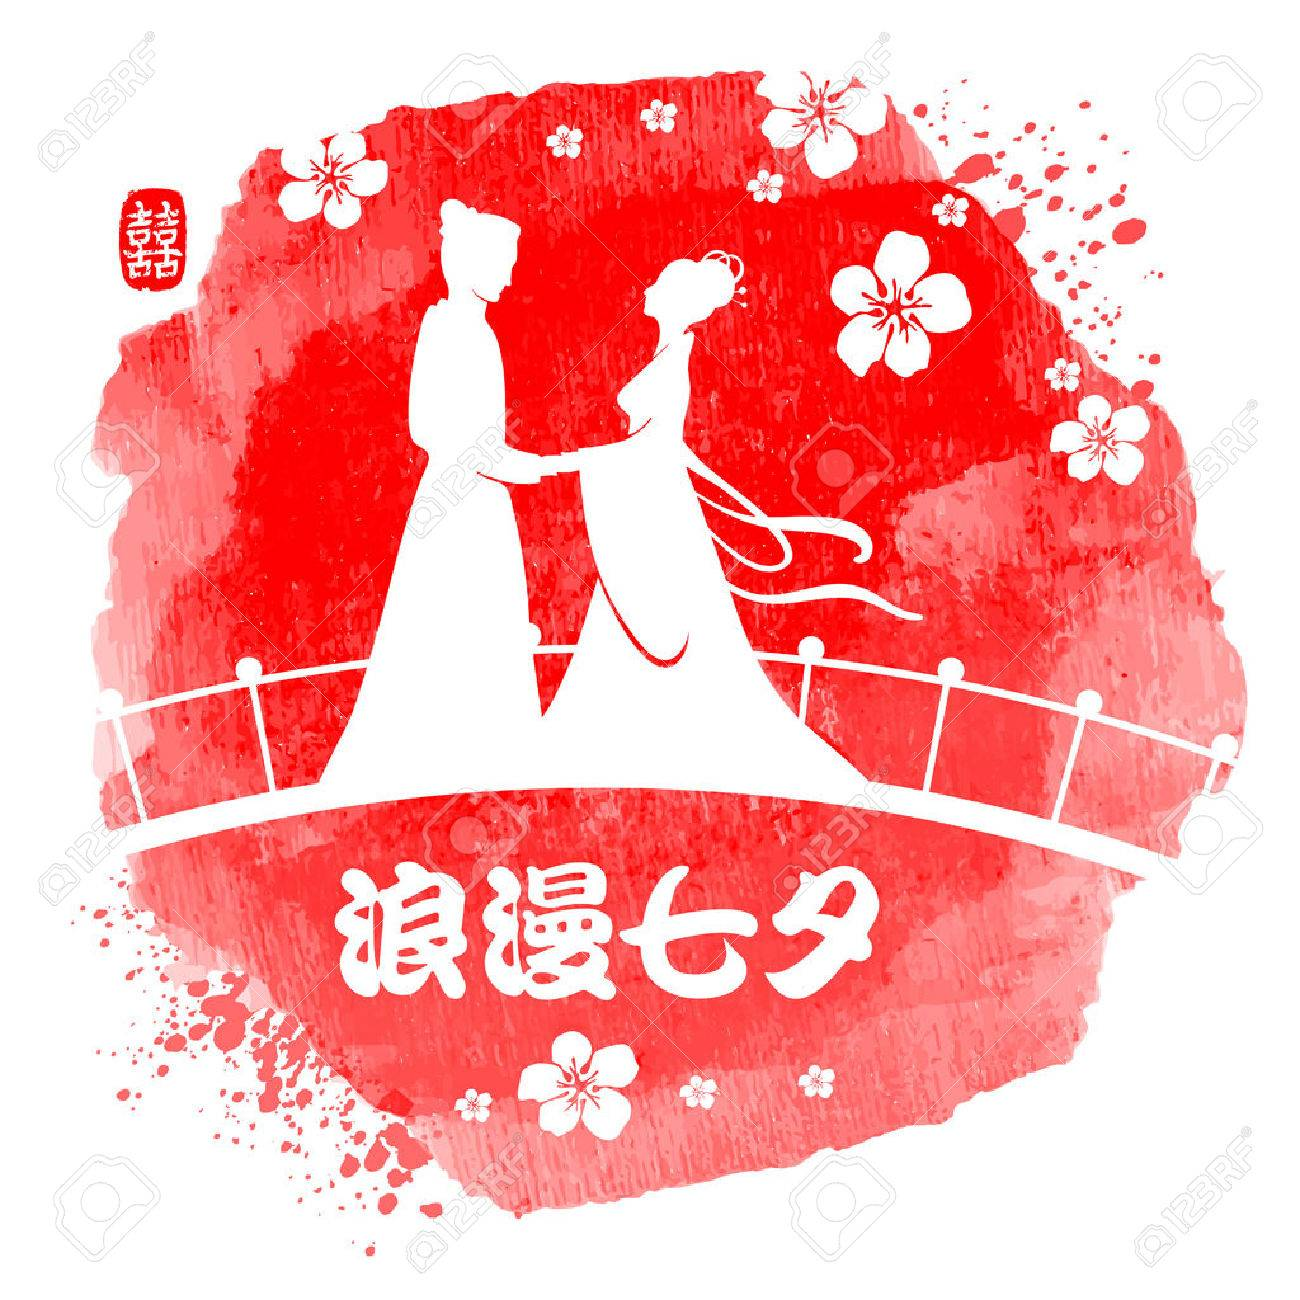 Chinese Valentine's Day, Qixi Festival or Double Seventh Festival. Celebration of the annual meeting of cowherd and weaver girl. - 83817564